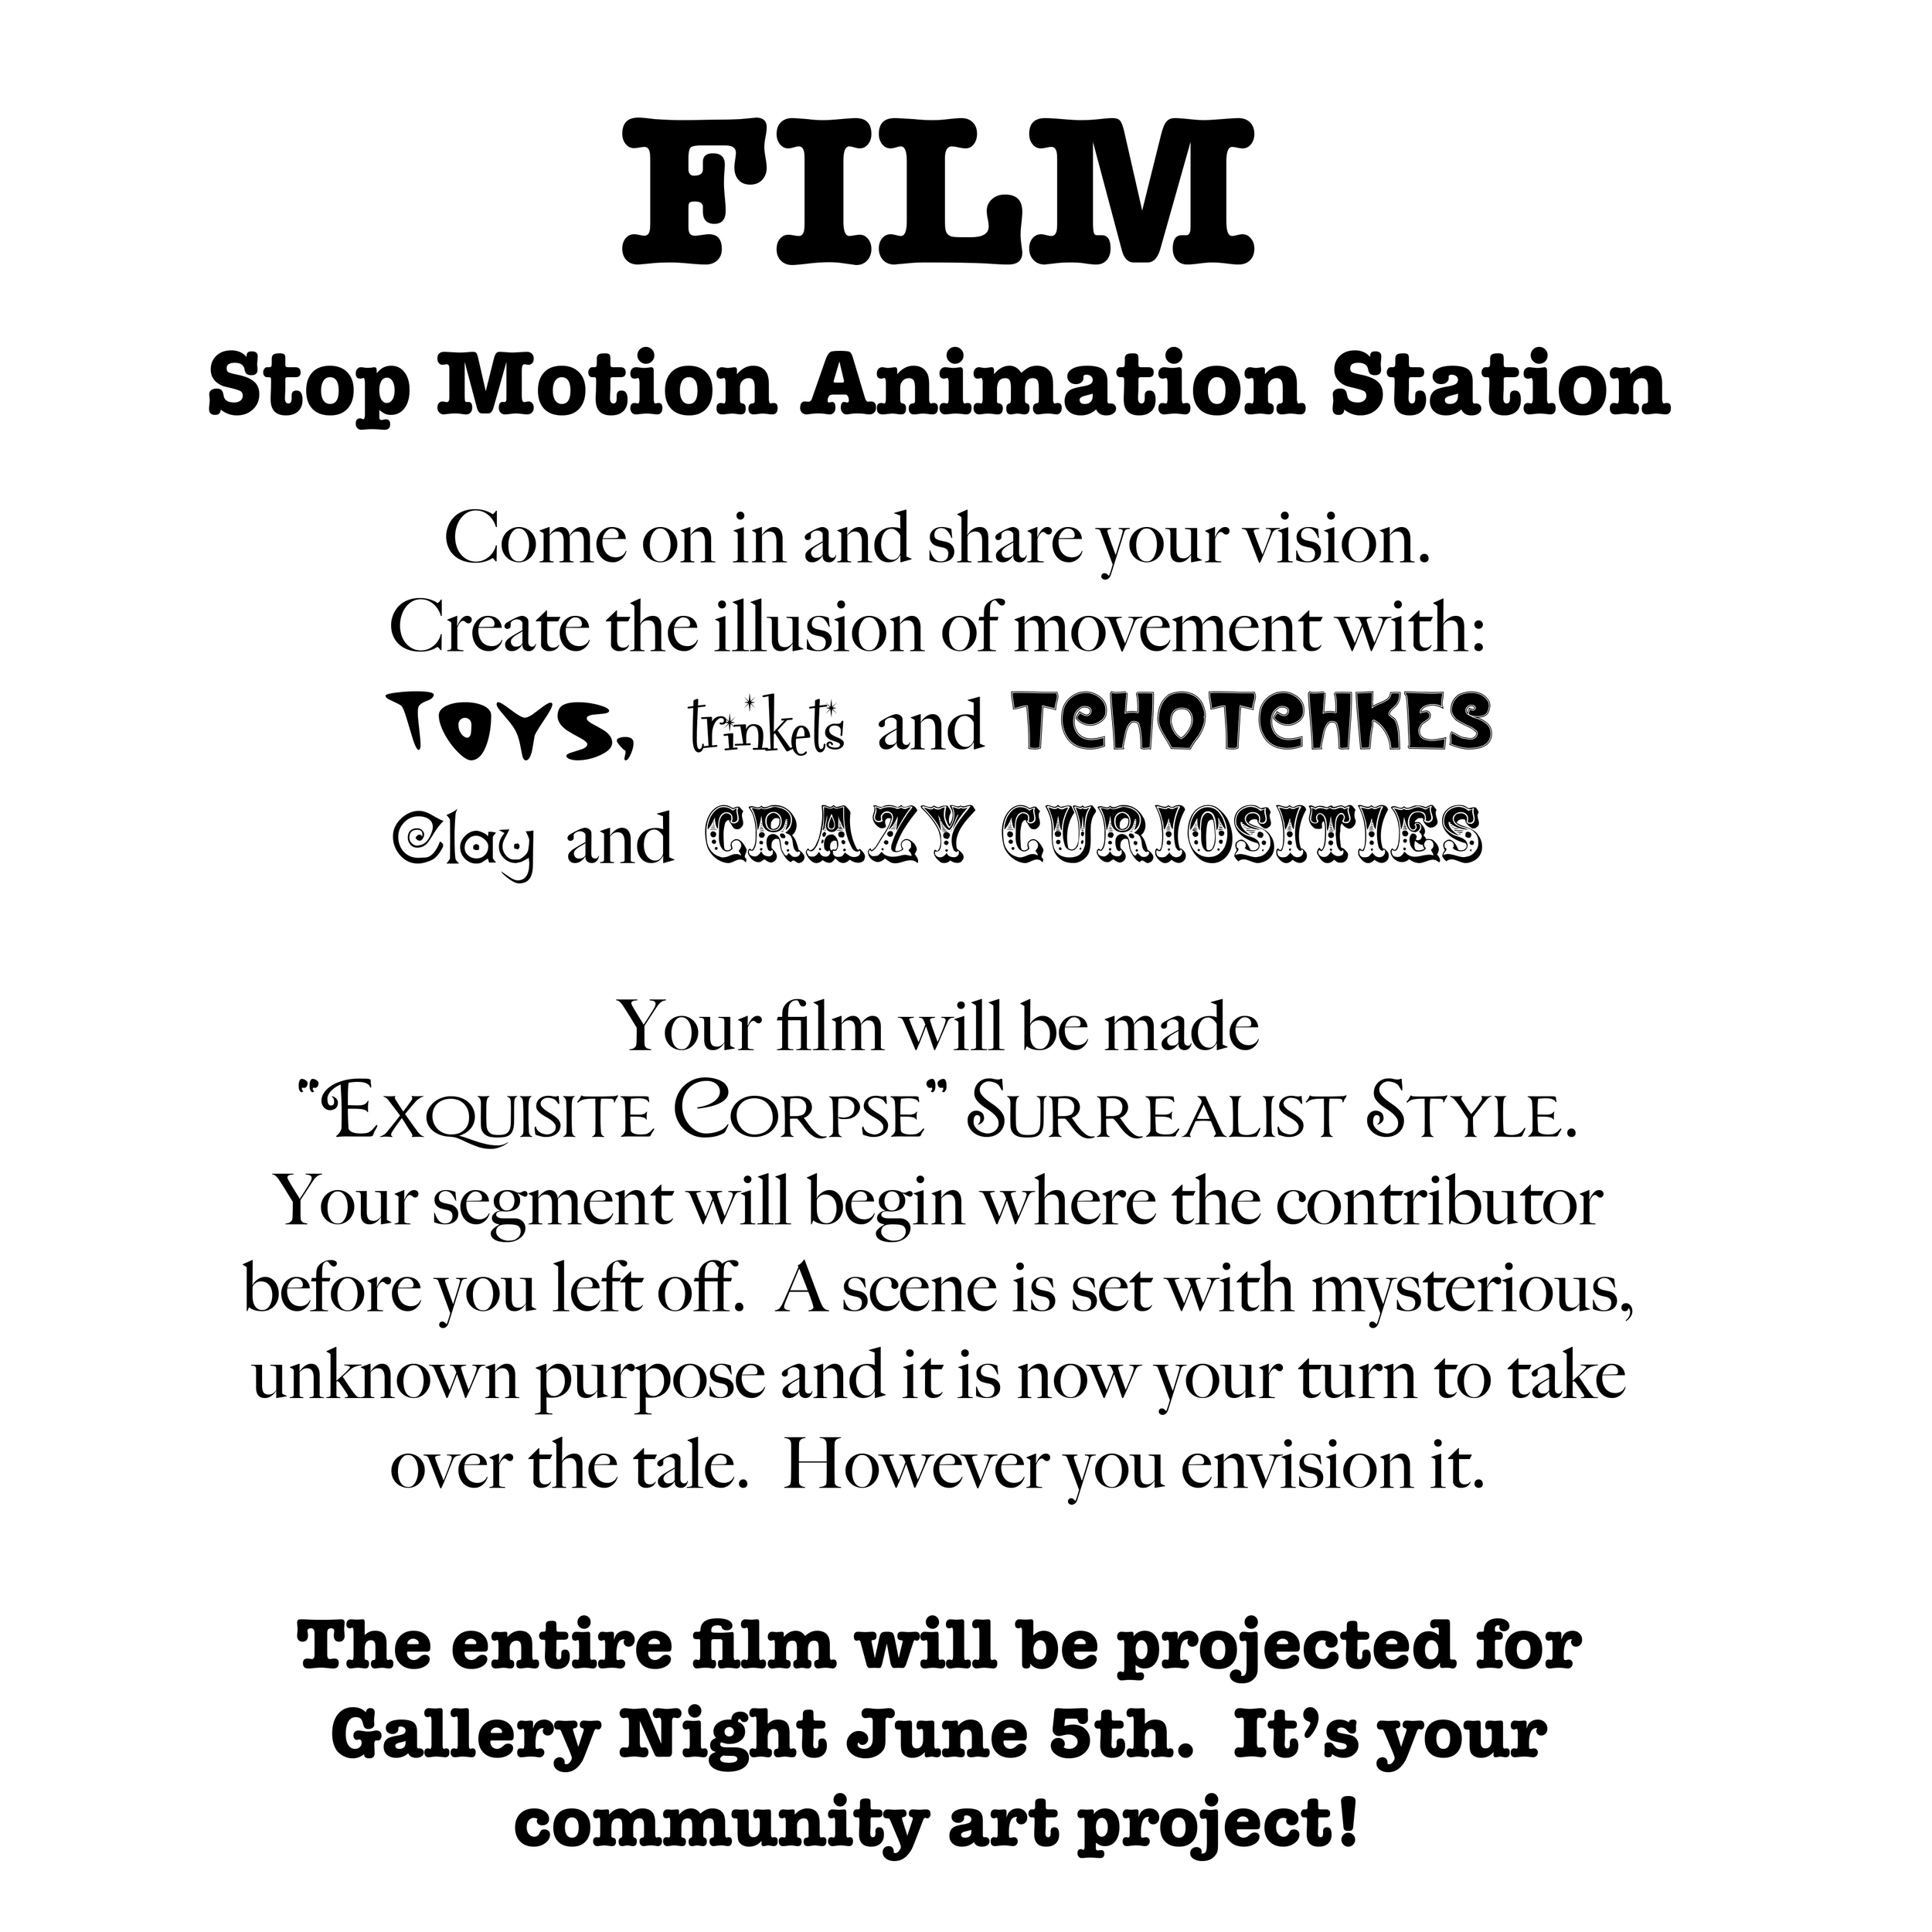 film station signage sq.jpg